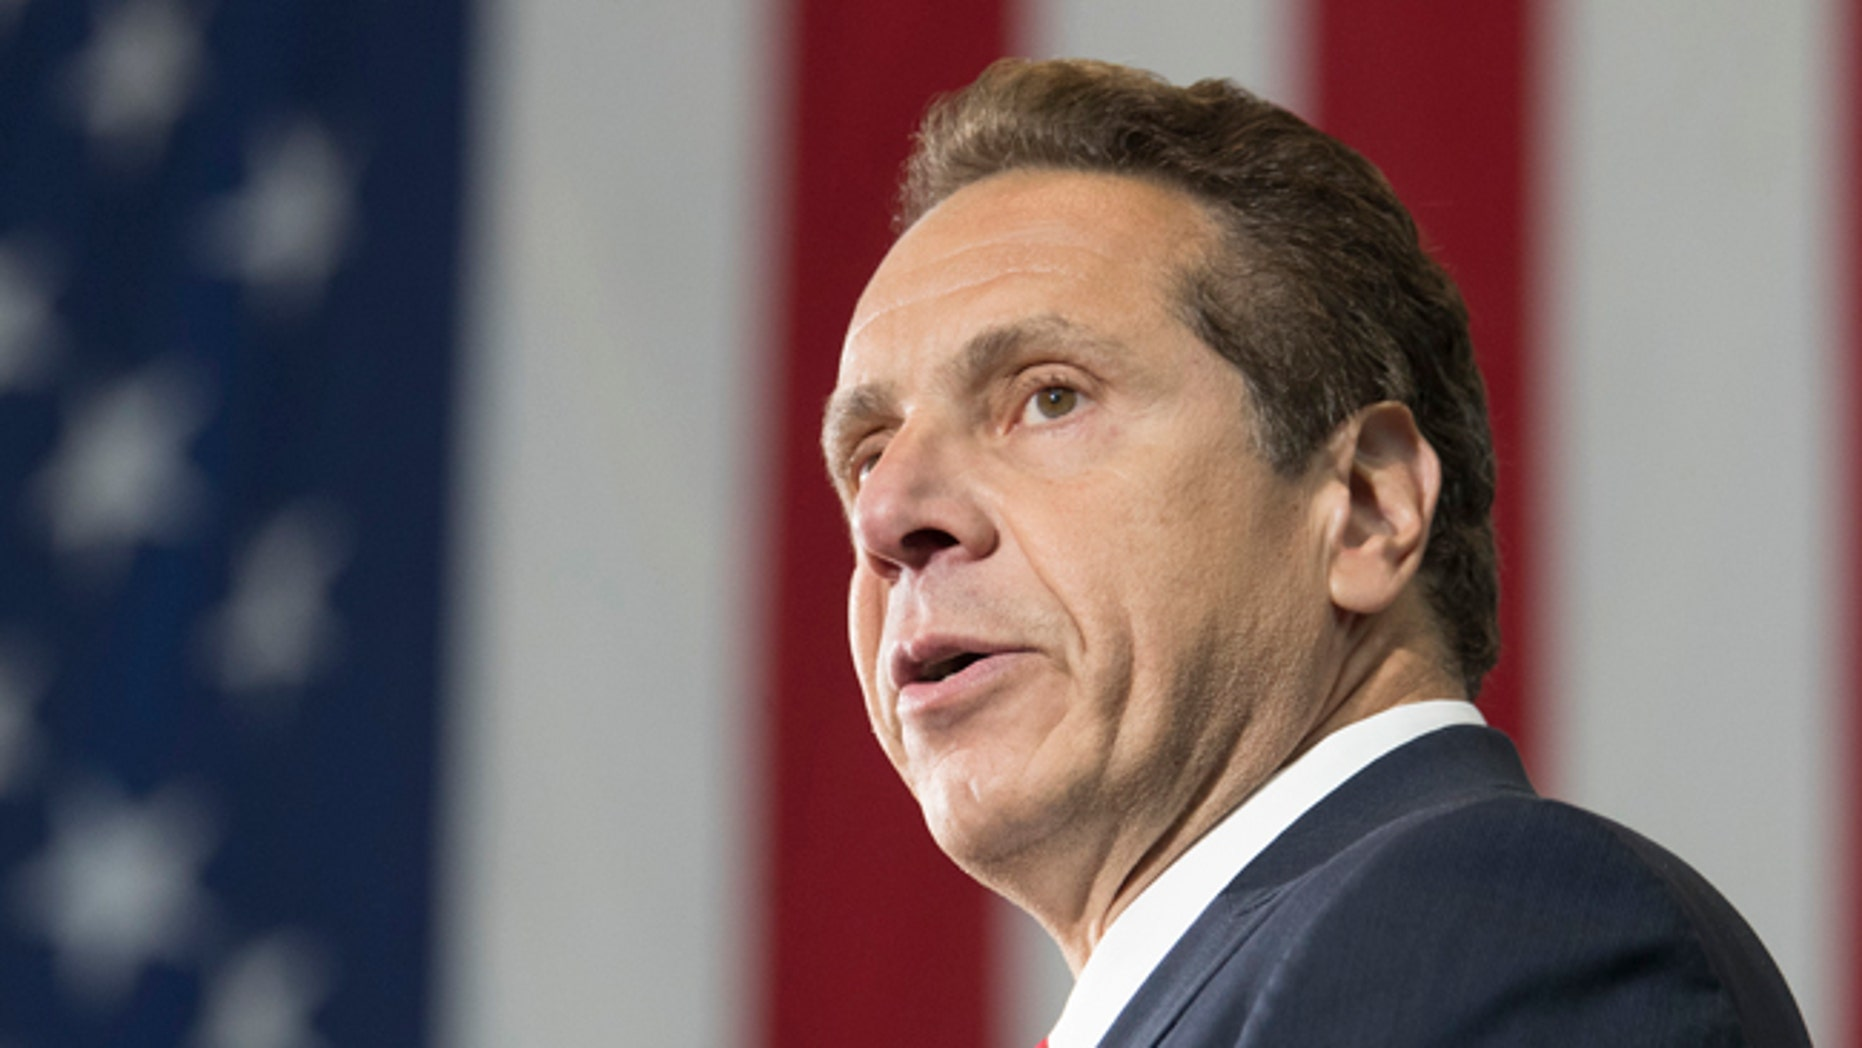 New York Gov. Andrew Cuomo speaks at a rally, Tuesday, June 6, 2017, in New York. Cuomo and House Minority Leader Nancy Pelosi, D-Calif., are hoping to increase the number of congressional seats held by the Democratic Party. (AP Photo/Mary Altaffer)